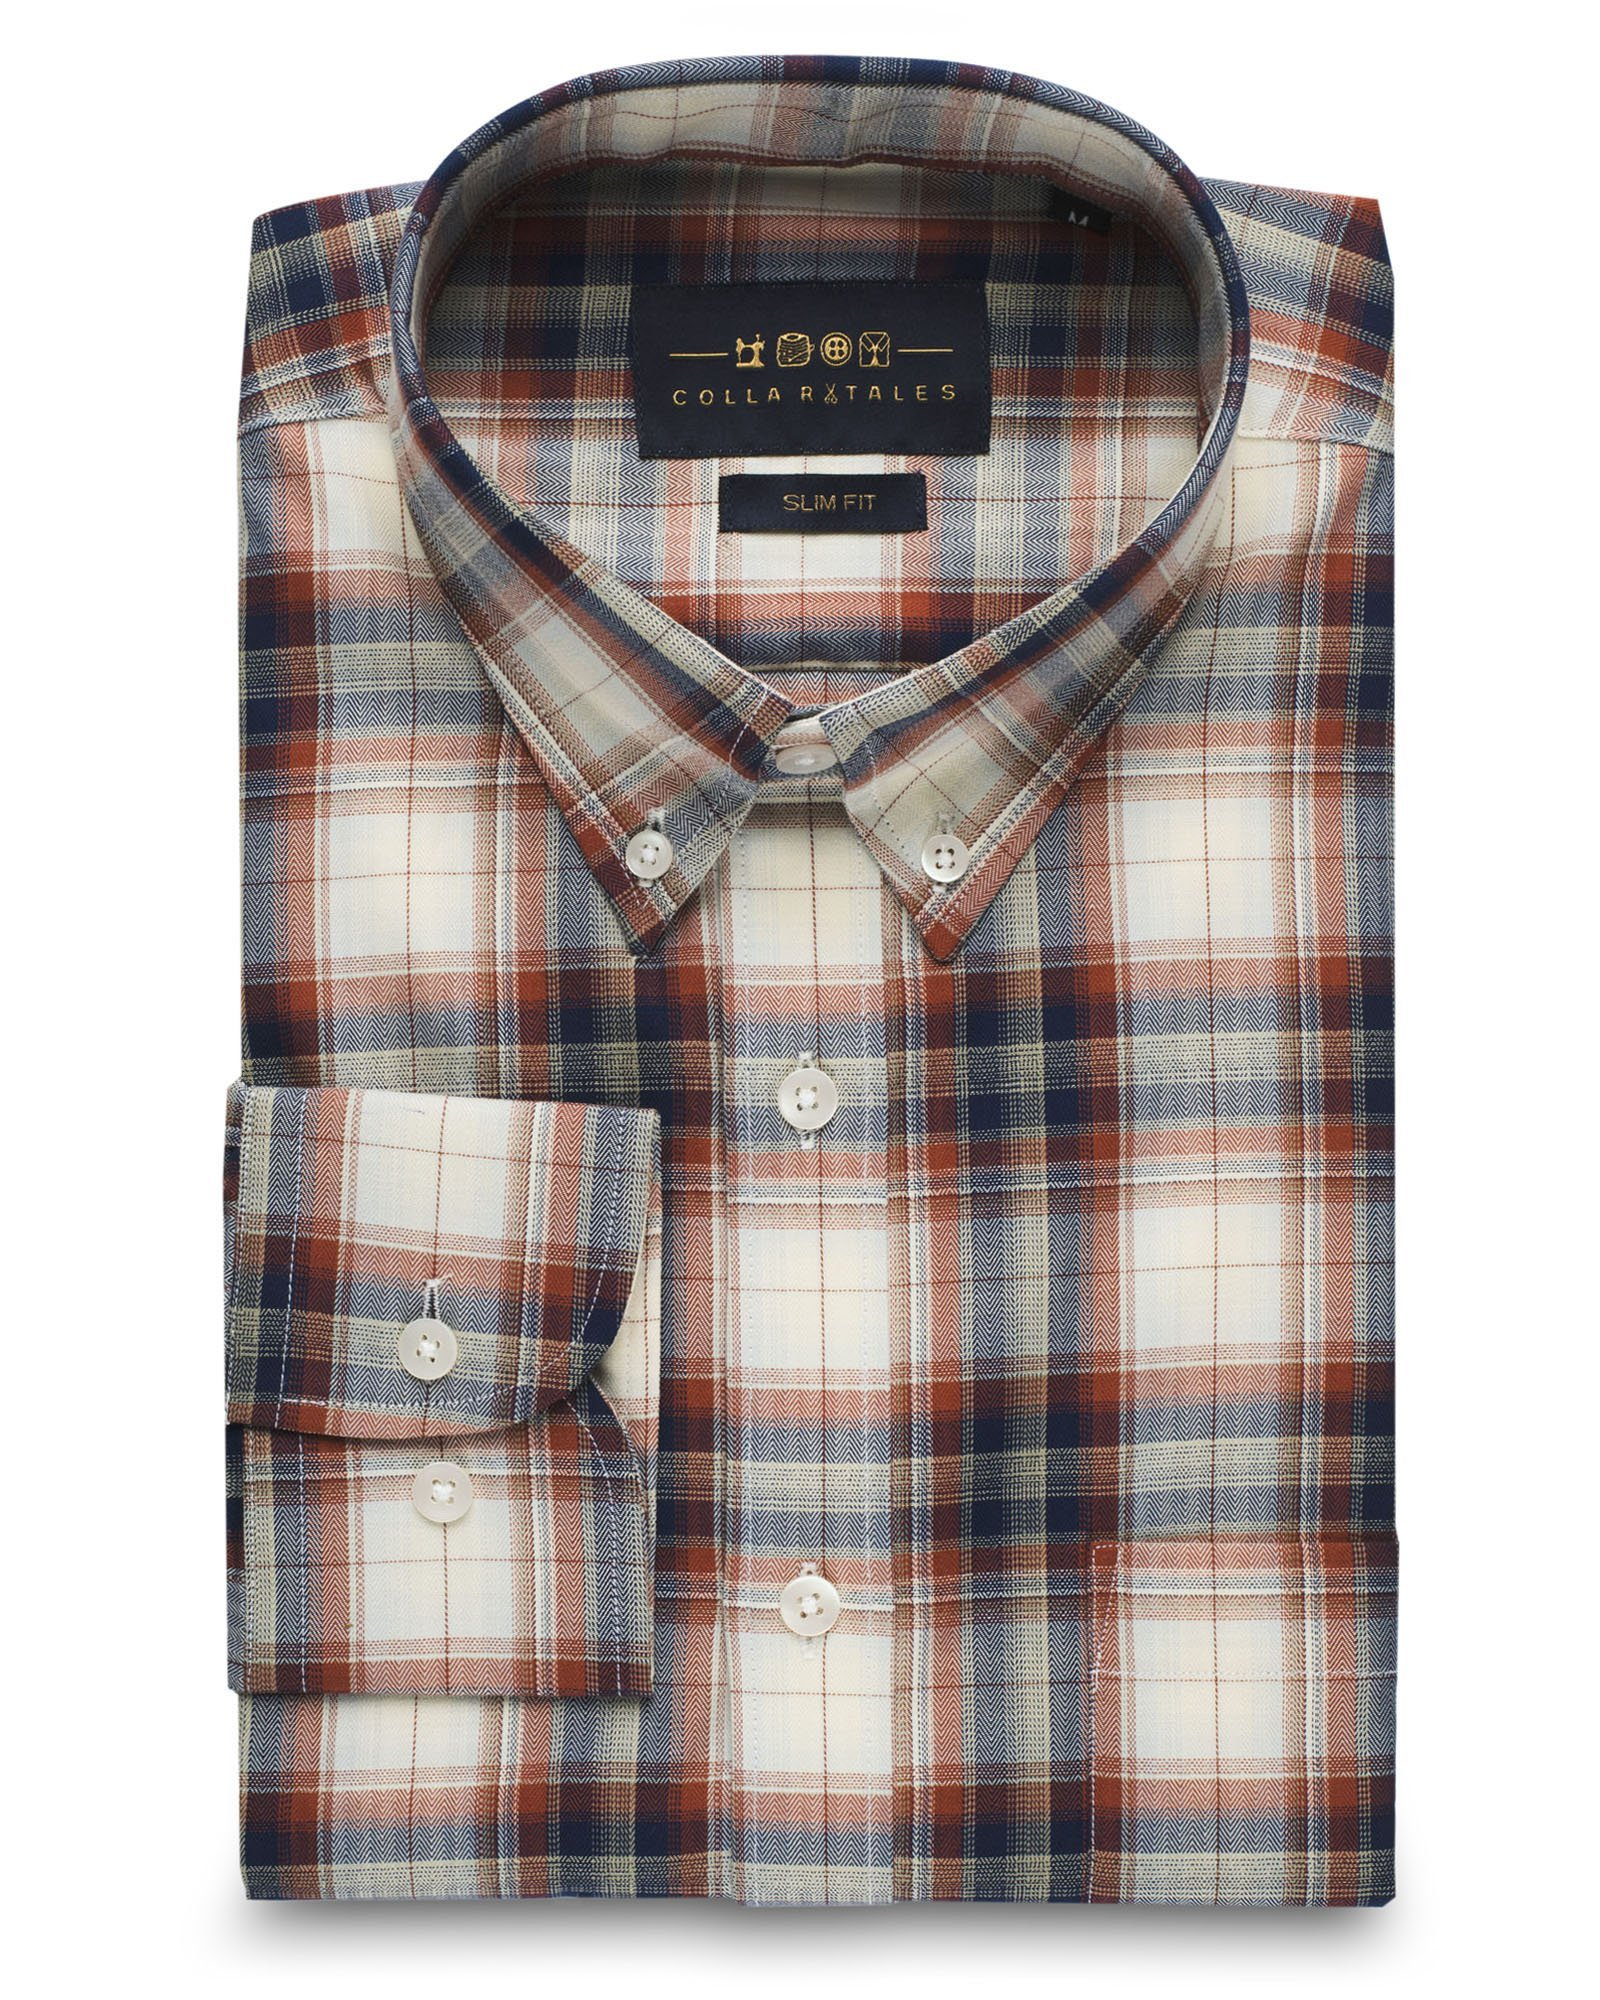 Collar Tales Men's Superfine Cotton Slim Fit Button Down Collar Long Sleeve Sport Shirt with Pocket - Cream & Red Check